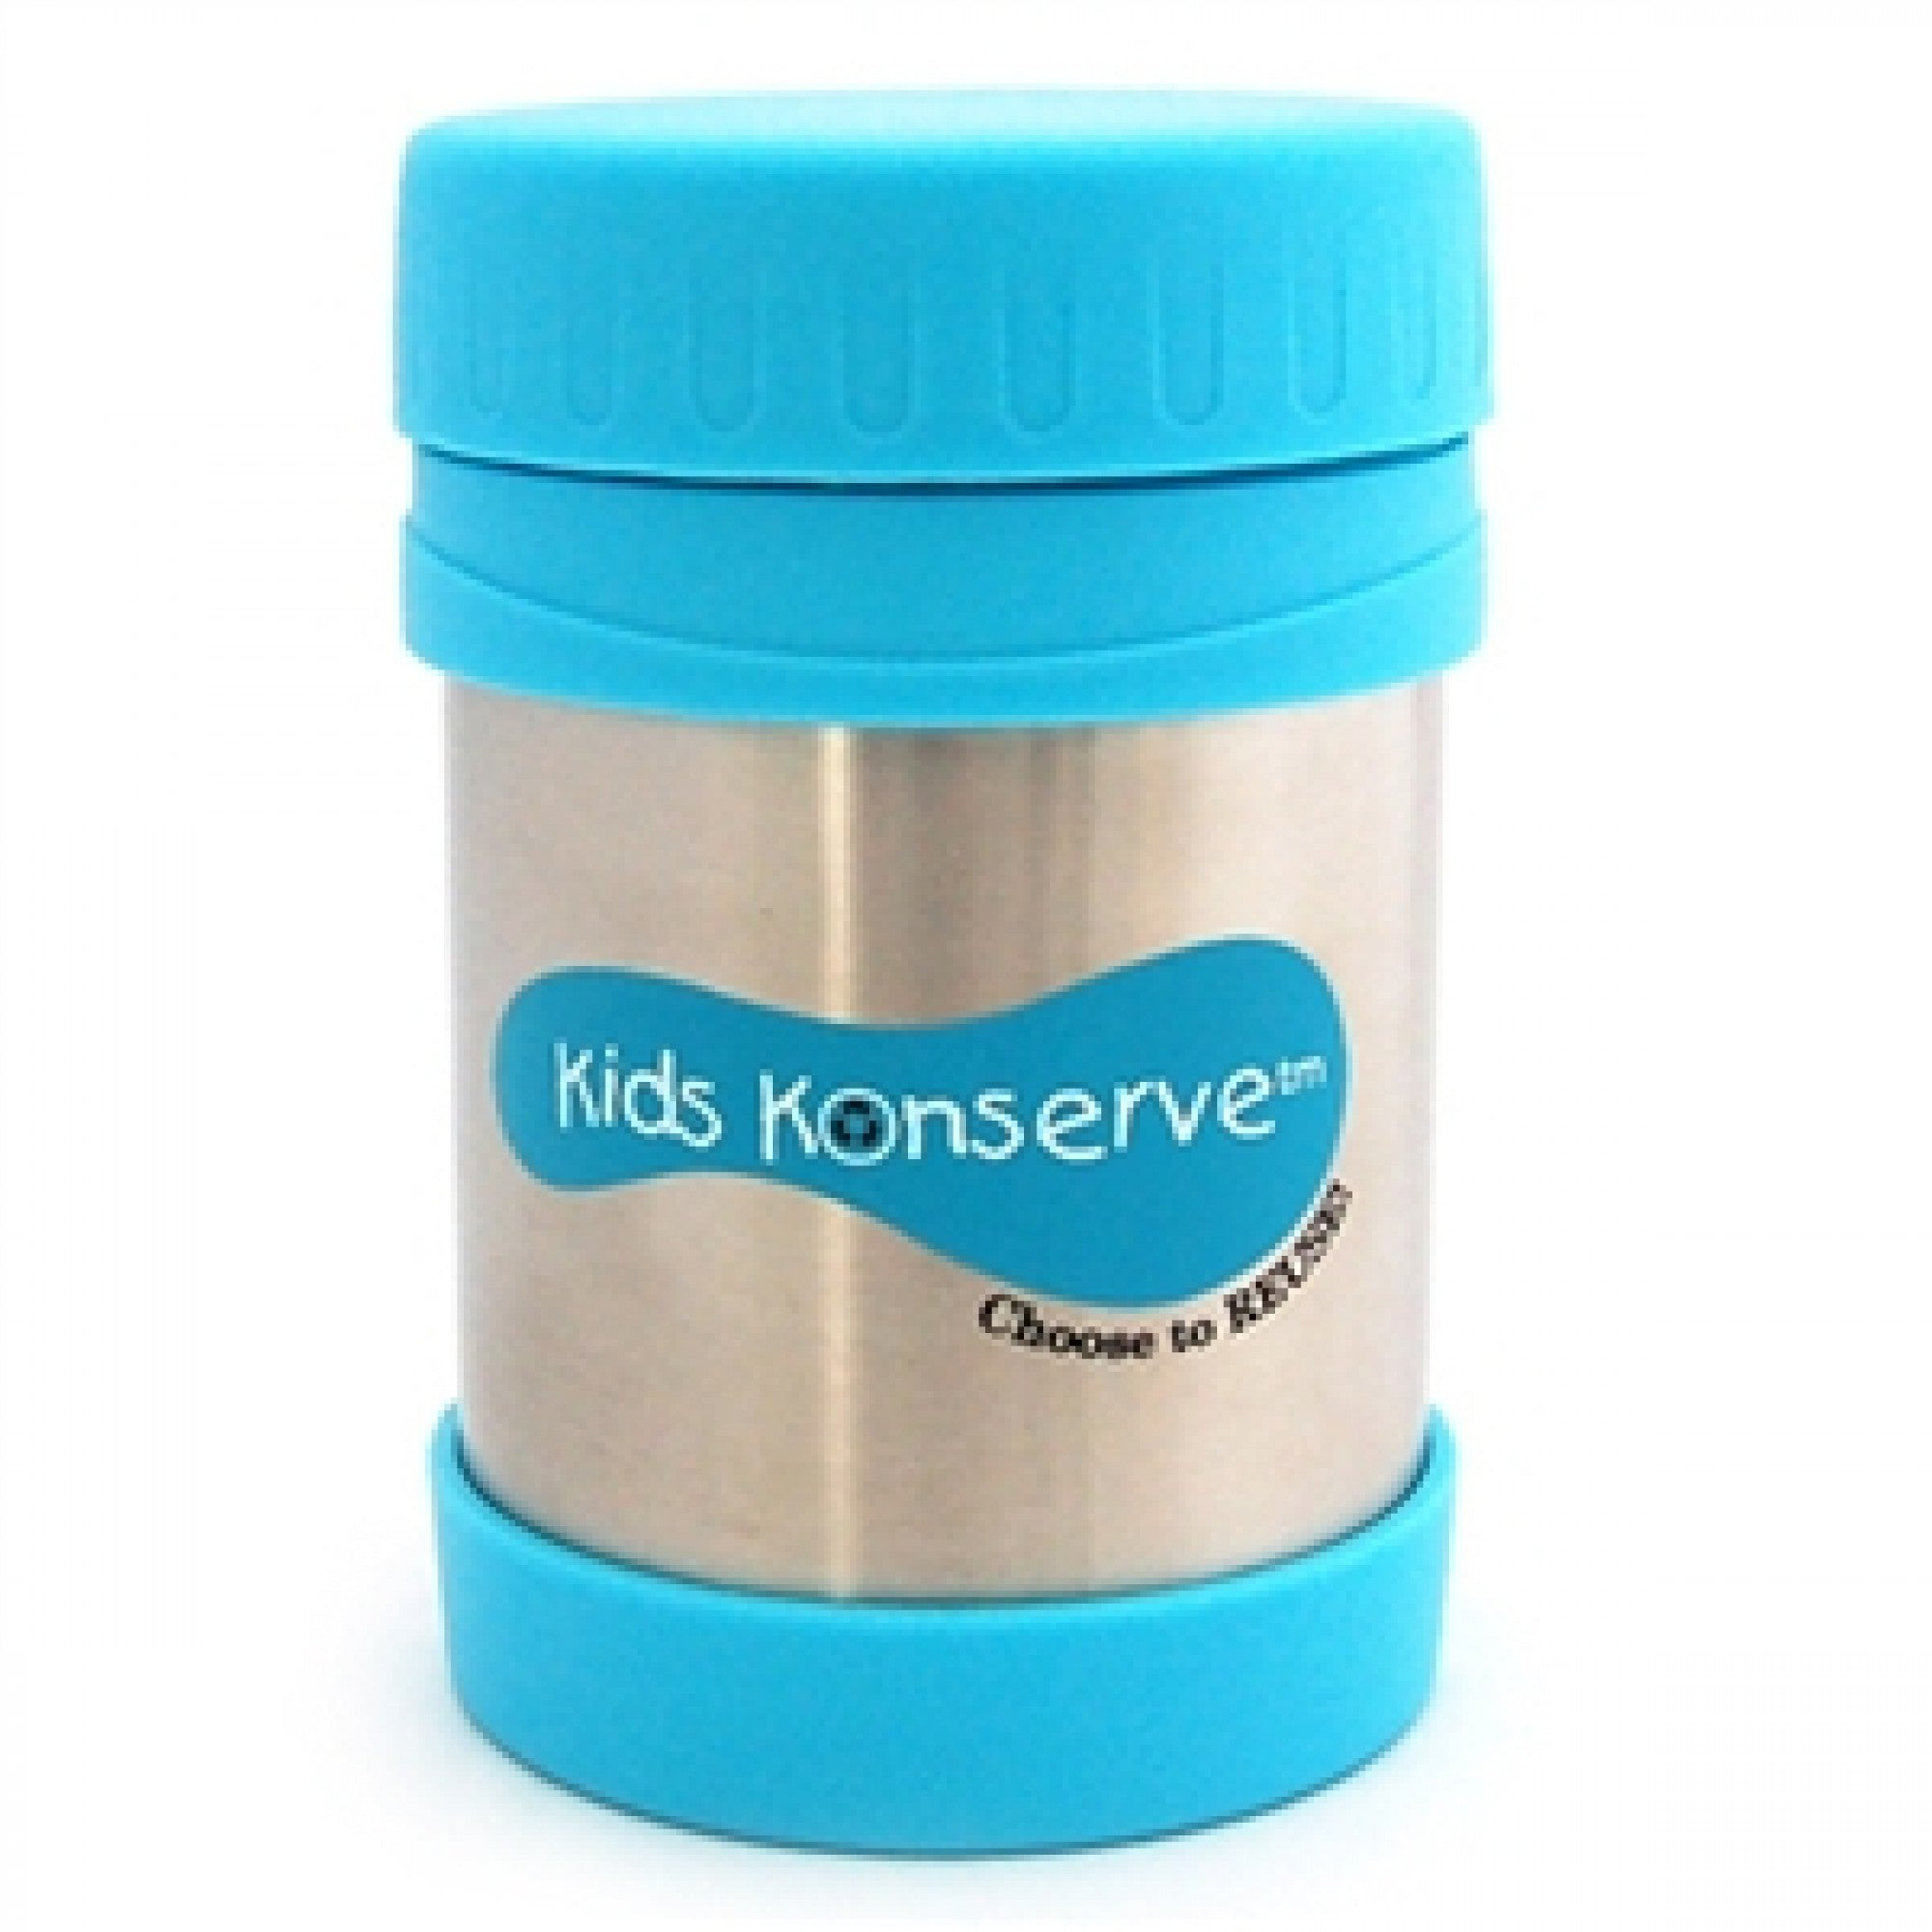 Kids Konserve Insulated Food Jar   - Kids Konserve - Little Earth Nest - 6